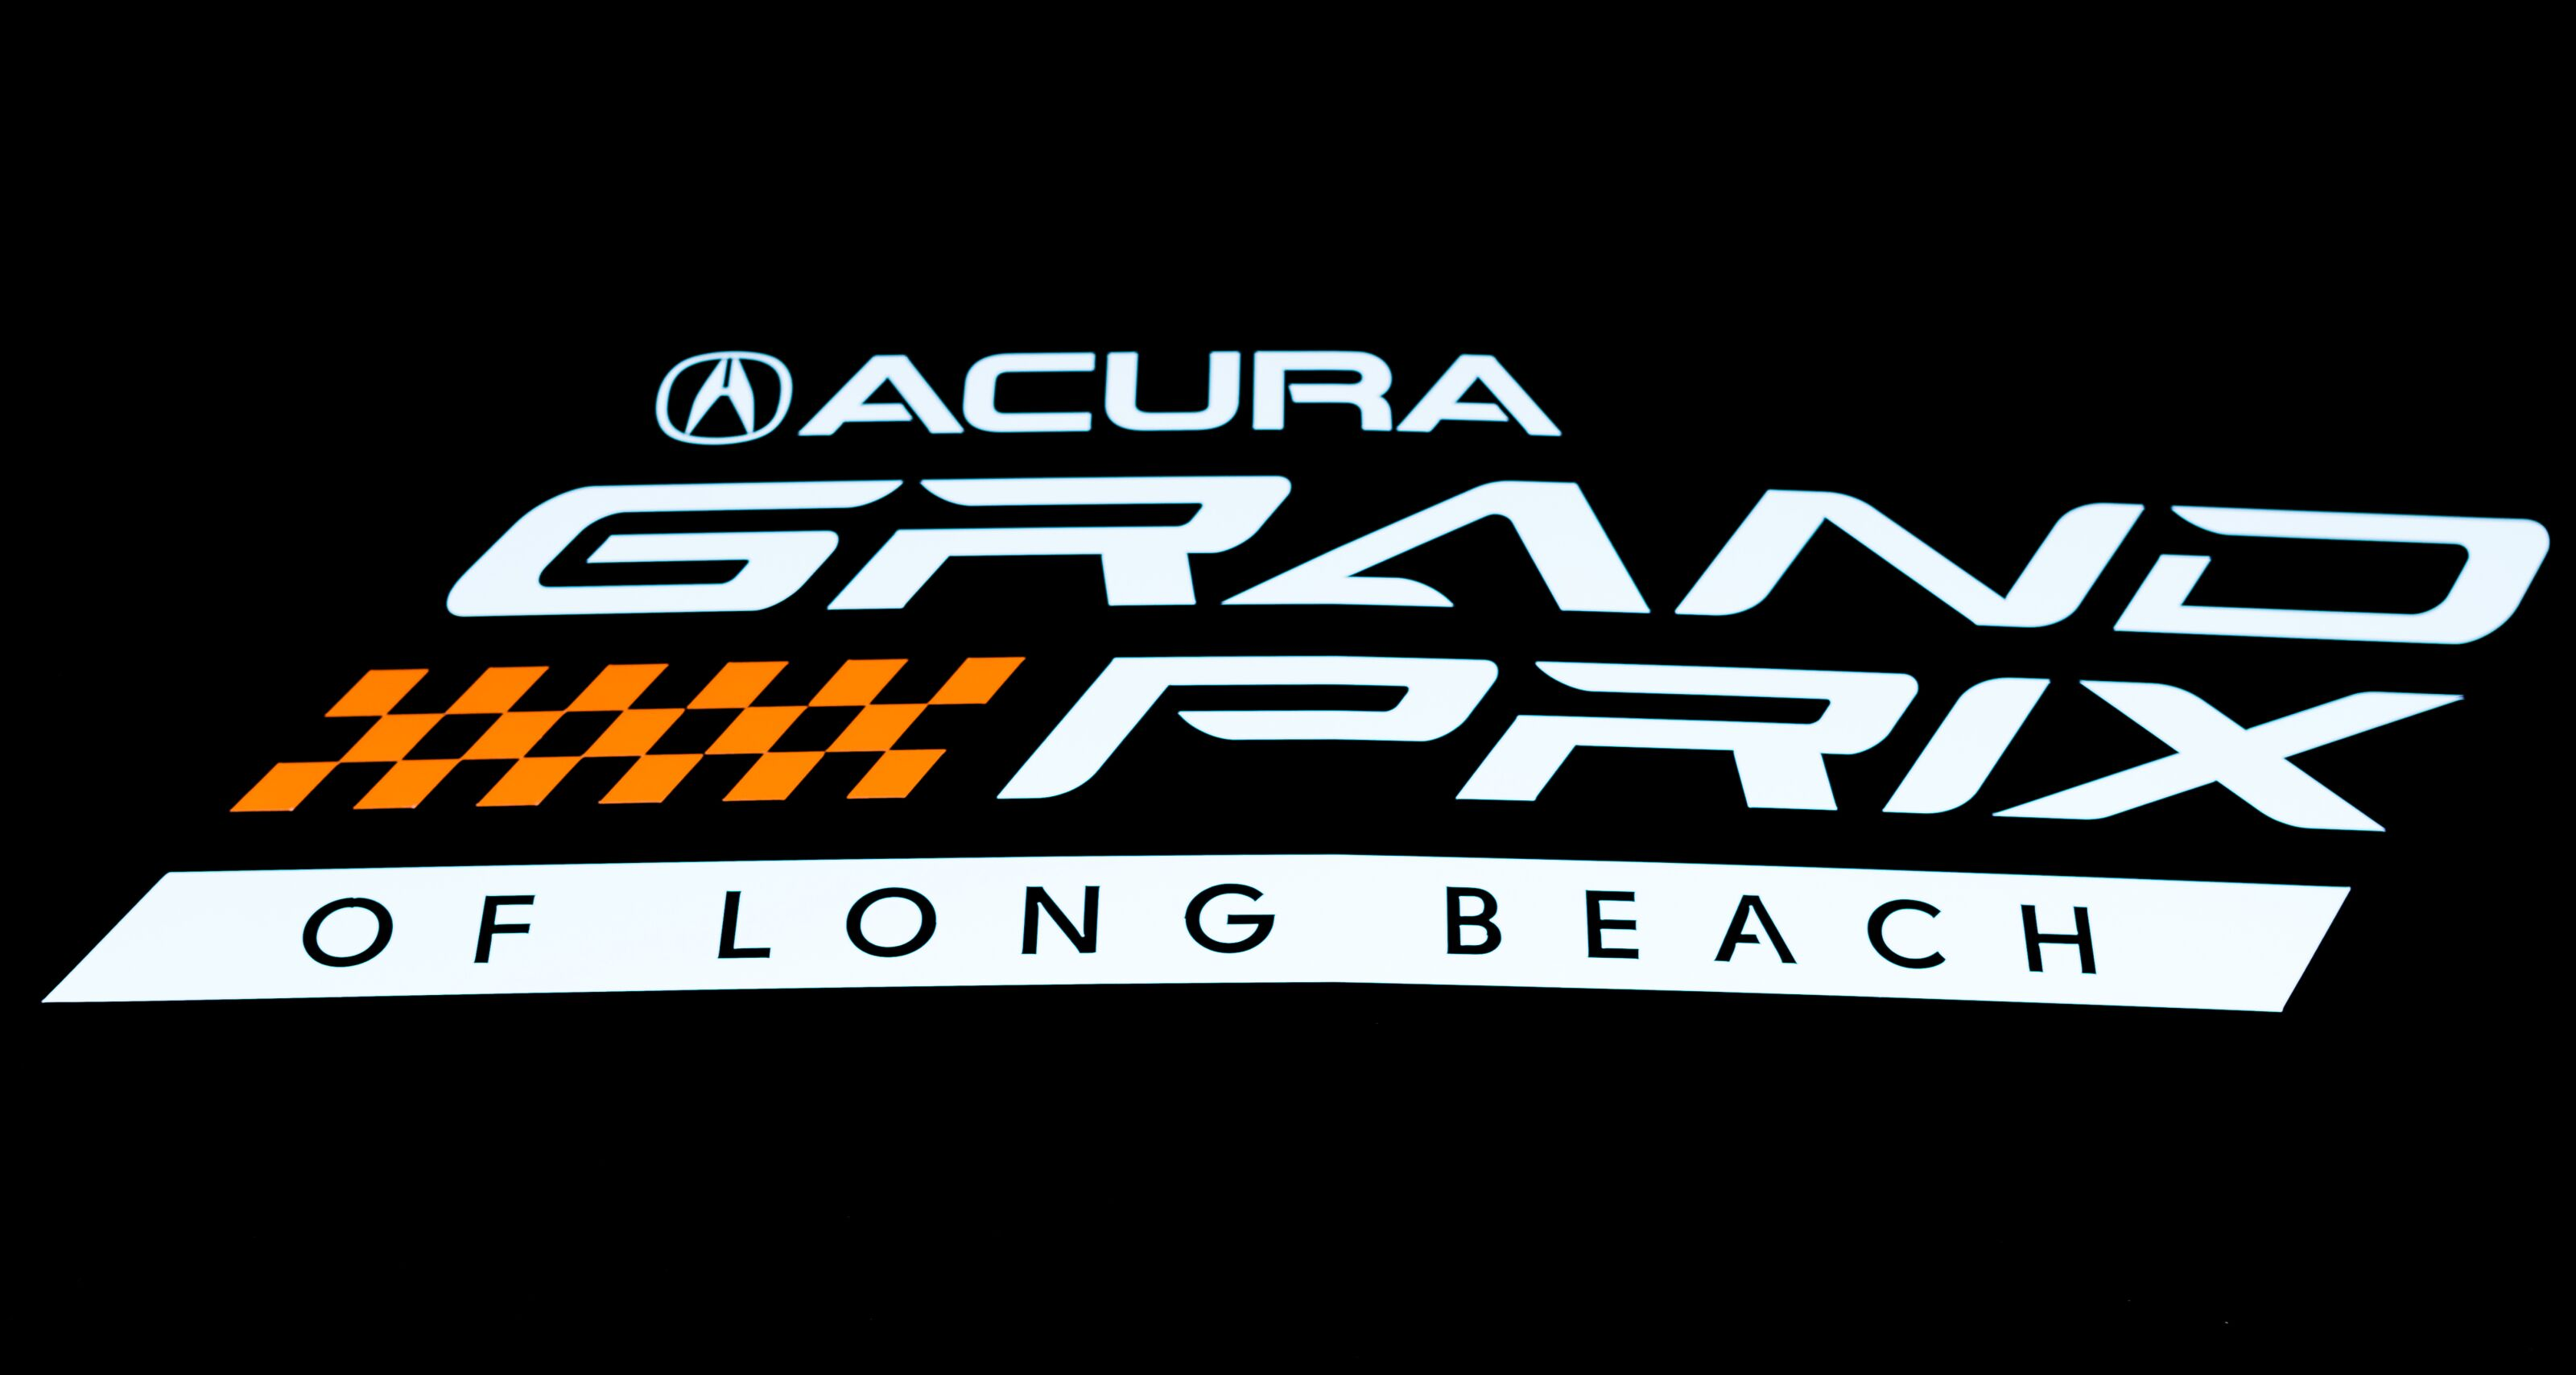 LONG BEACH, CA - APRIL 11: The 2019 Acura Grand Prix of Long Beach Logo on April 11, 2019 in Long Beach, California. (Photo by Greg Doherty/Getty Images)